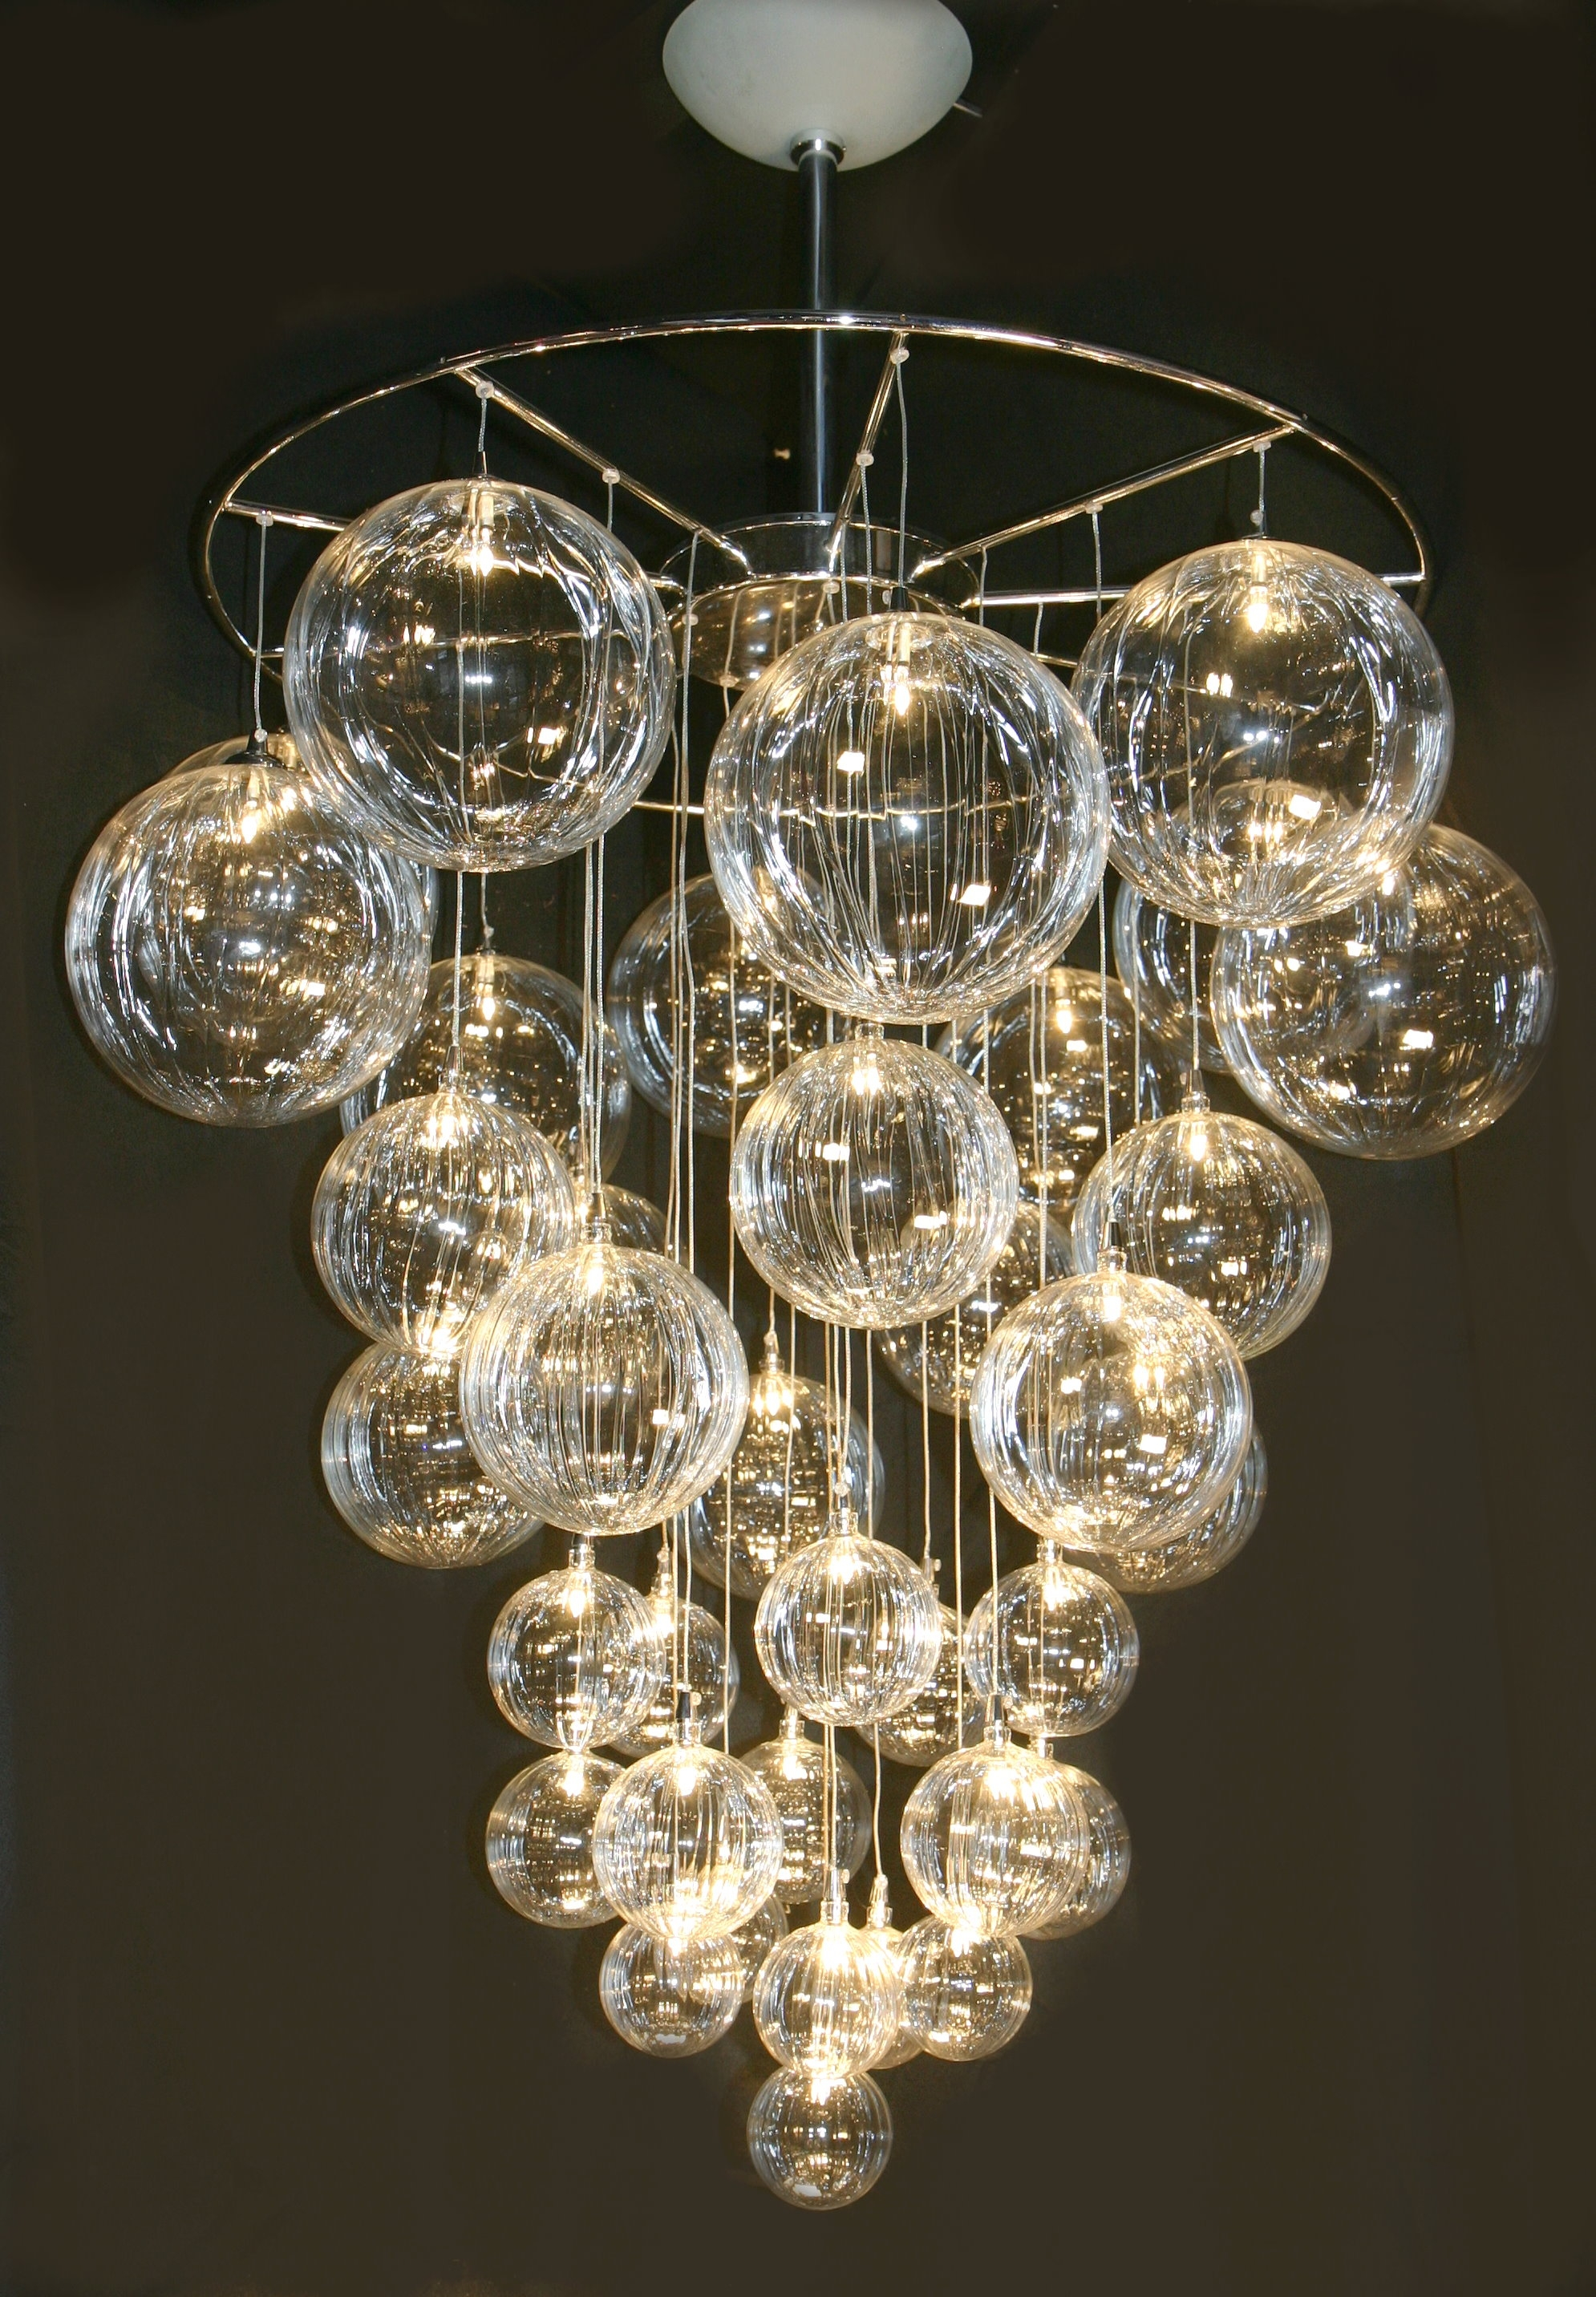 Chandeliers Hand Blown Glass Lighting Modern Contemporary With Modern Glass Chandeliers (Image 6 of 15)